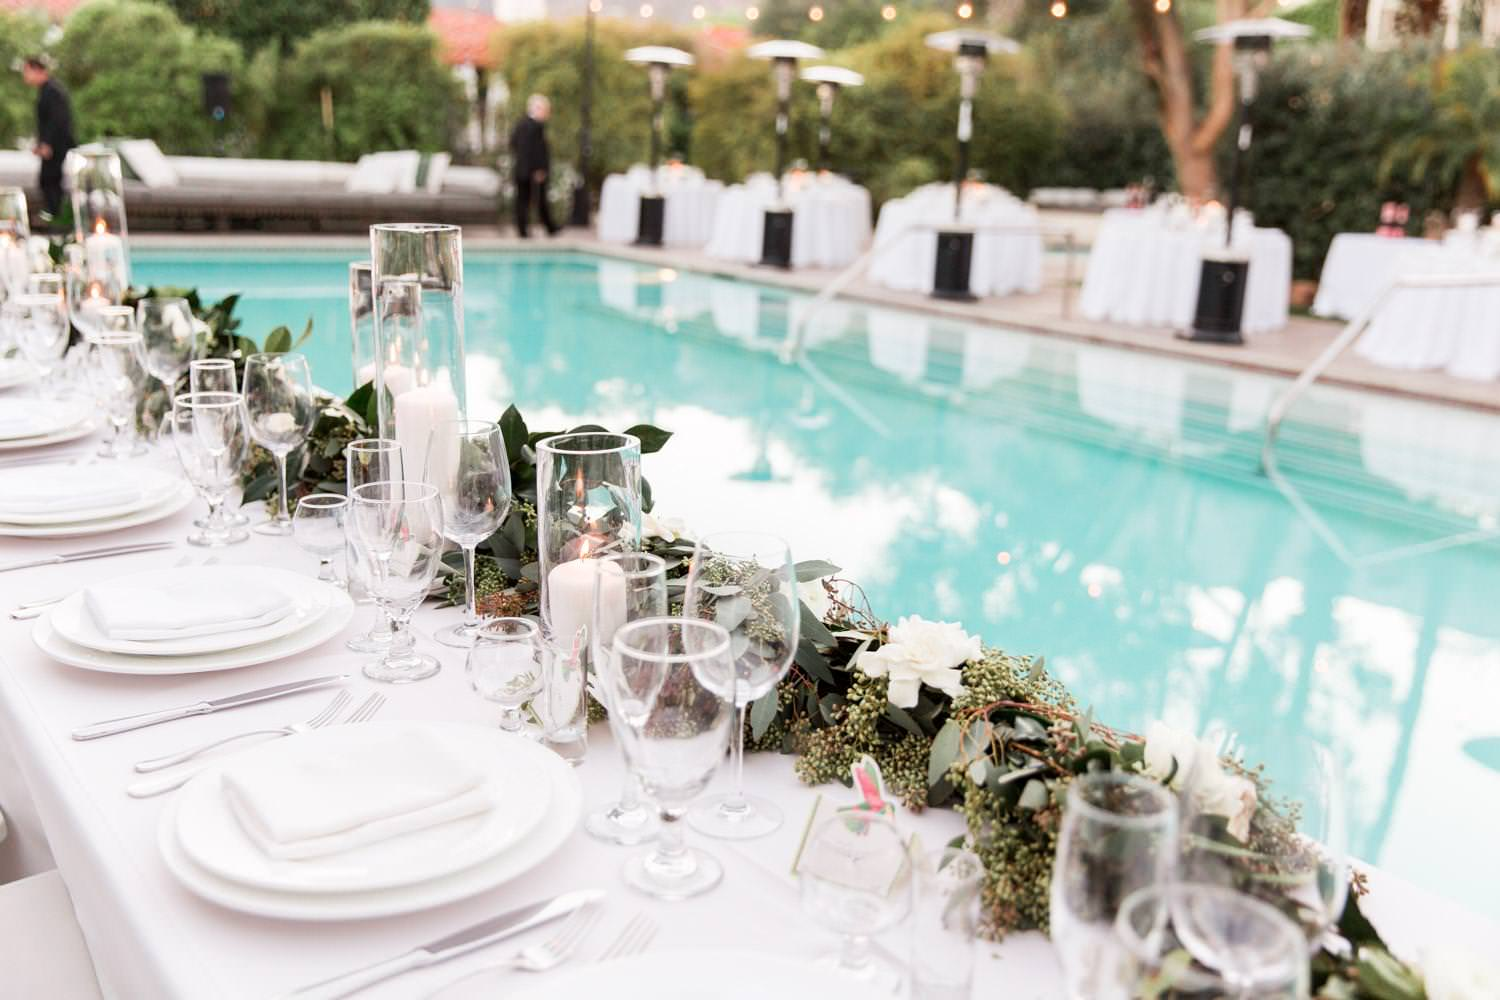 Colony Palms Hotel Wedding Palm Springs Reception By The Pool Cavin Elizabeth Photography